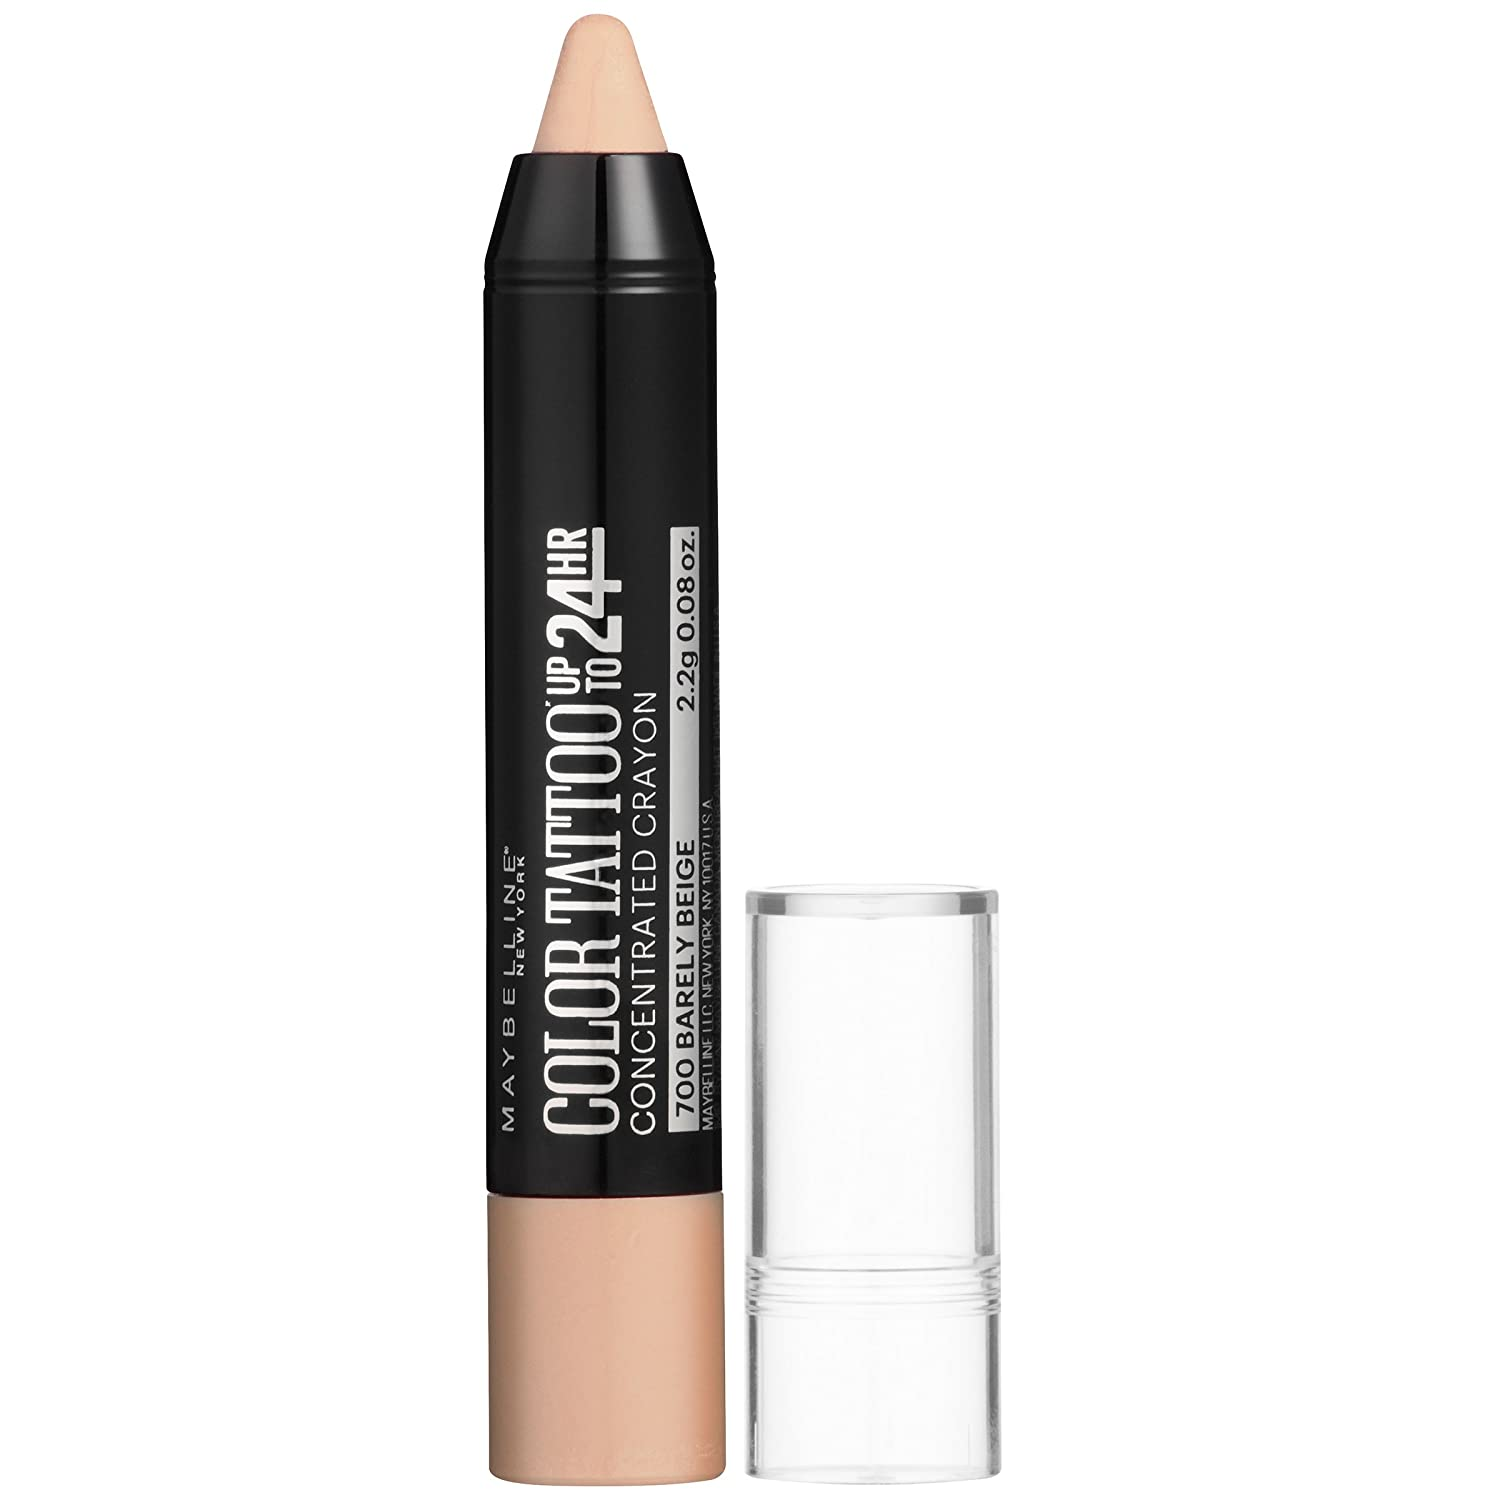 Maybelline New York Eyestudio Color Tattoo Concentrated Crayon Eye Color, Barely Beige, 0.08 Ounce